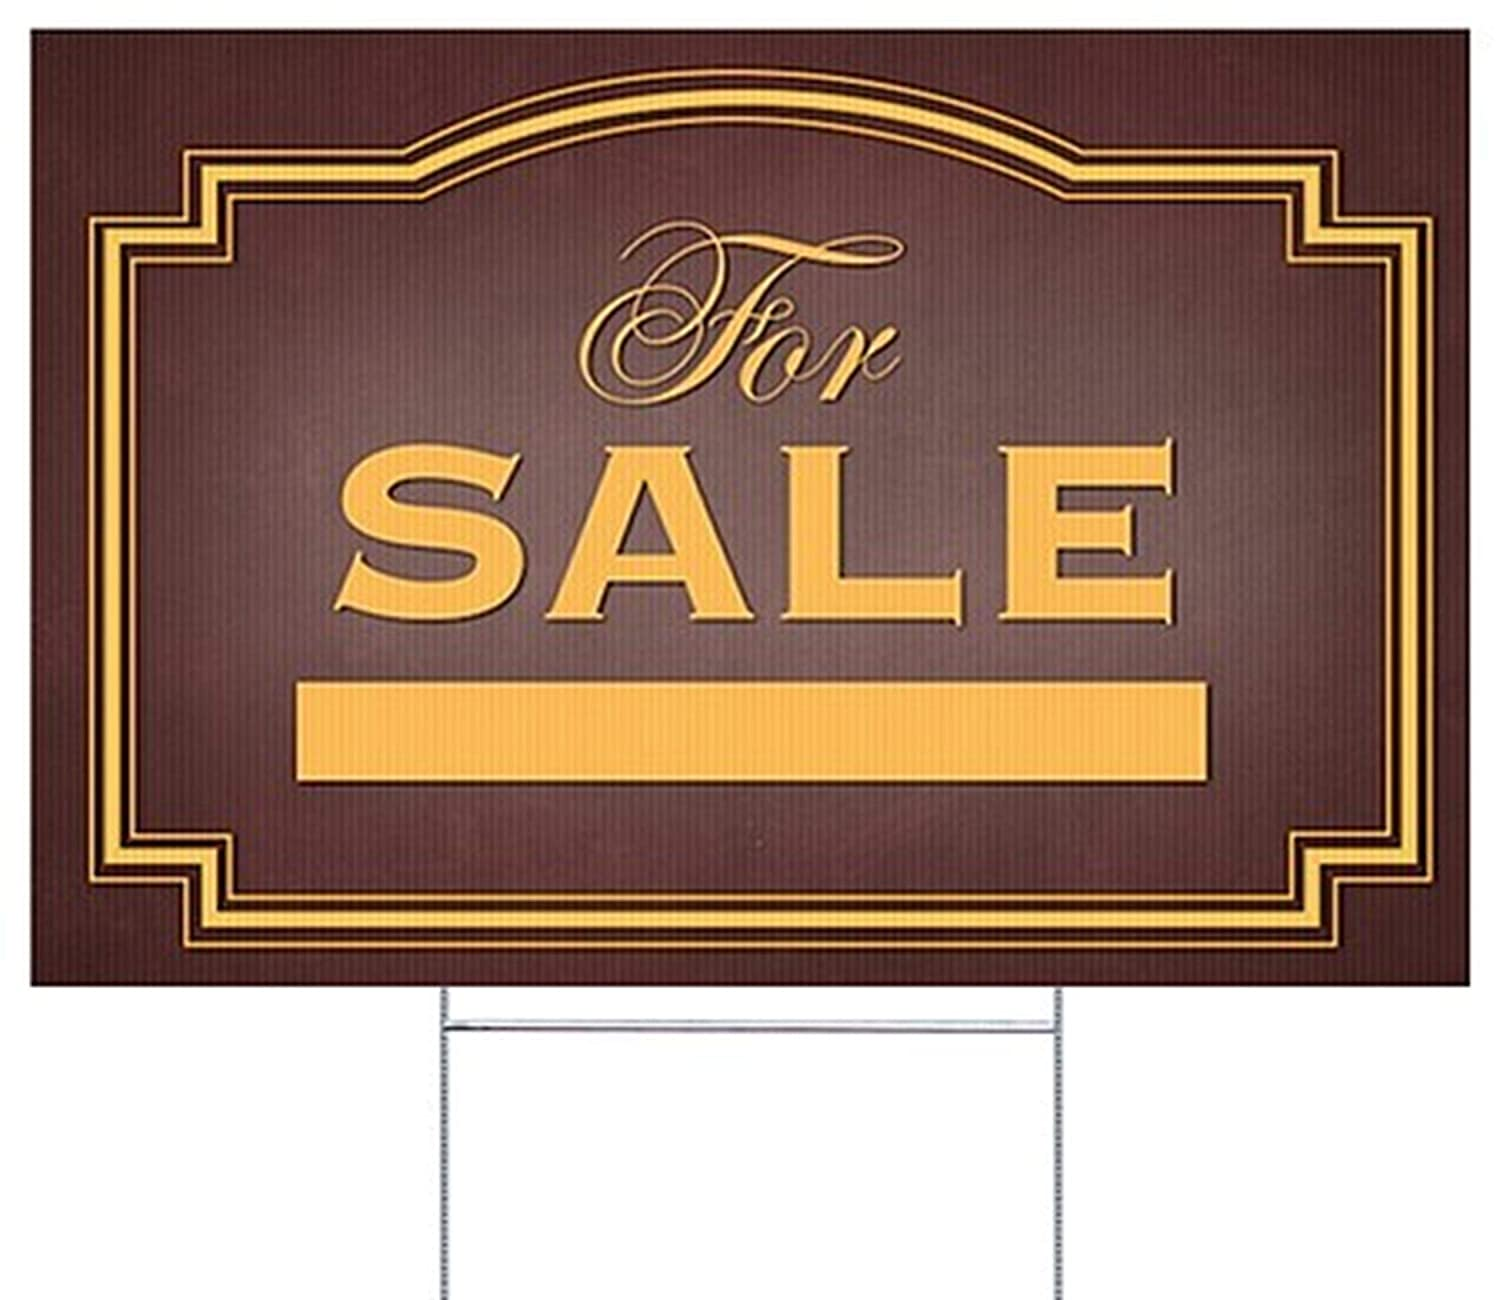 CGSignLab 2454428_5absw_27x18_None for Sale -Basic Navy 8 in. NEW before Max 65% OFF selling ☆ 1